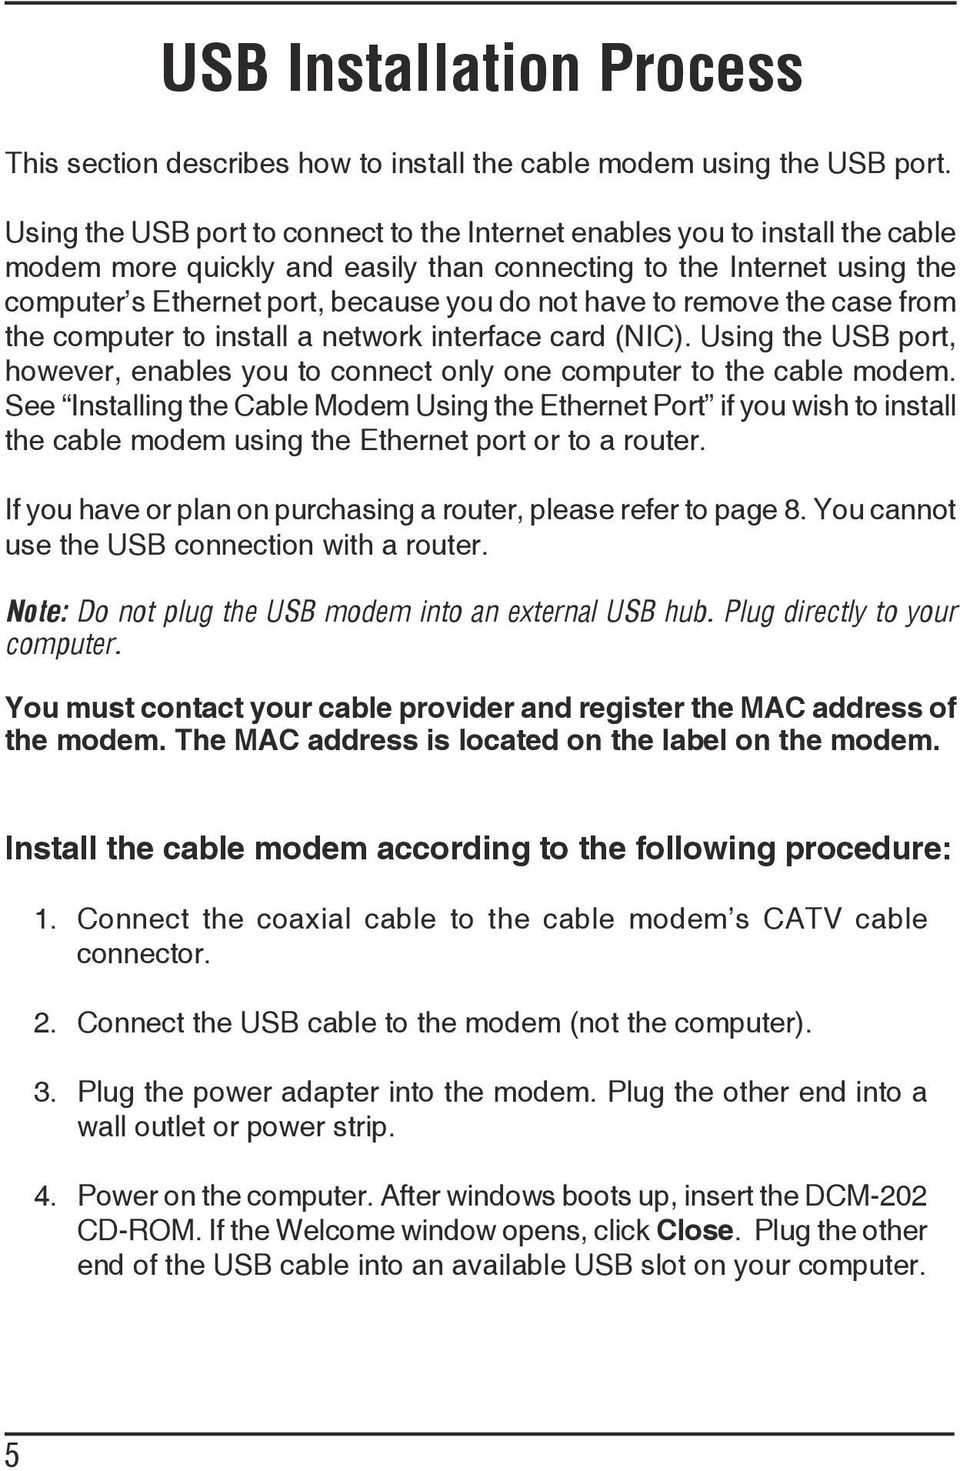 have to remove the case from the computer to install a network interface card (NIC). Using the USB port, however, enables you to connect only one computer to the cable modem.